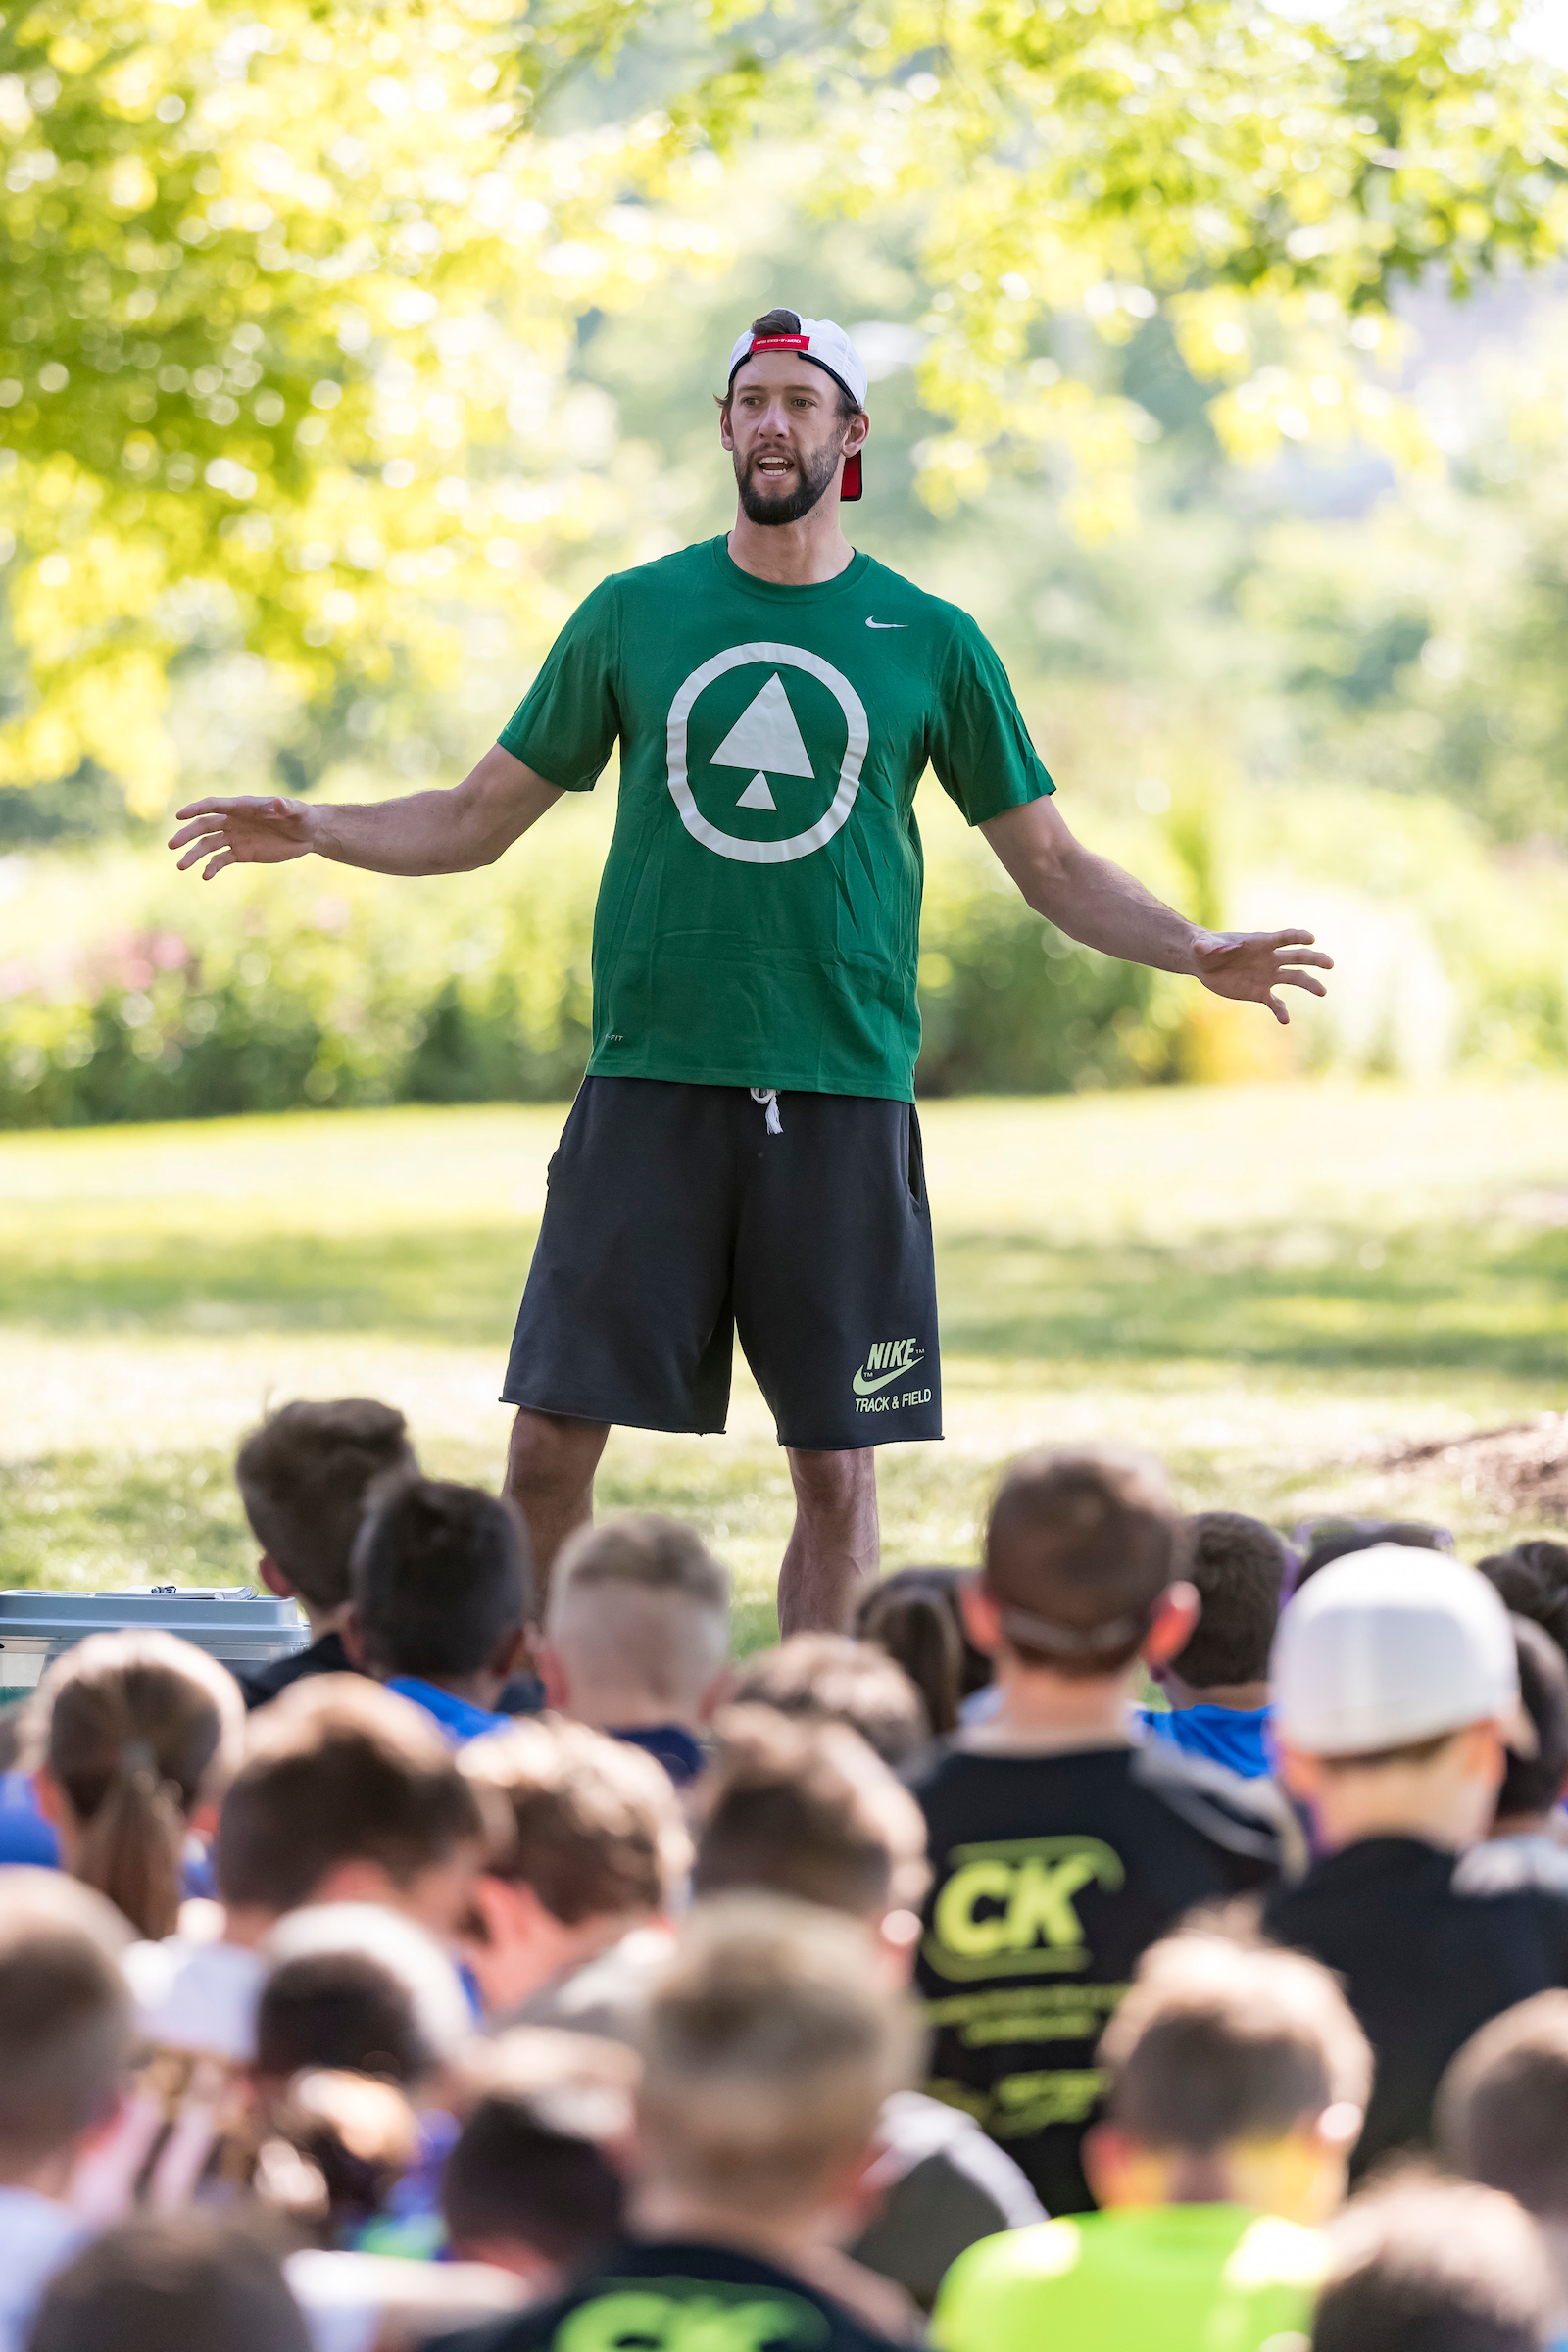 Andy Wheating giving a motivational talk about how running changed his life for the better